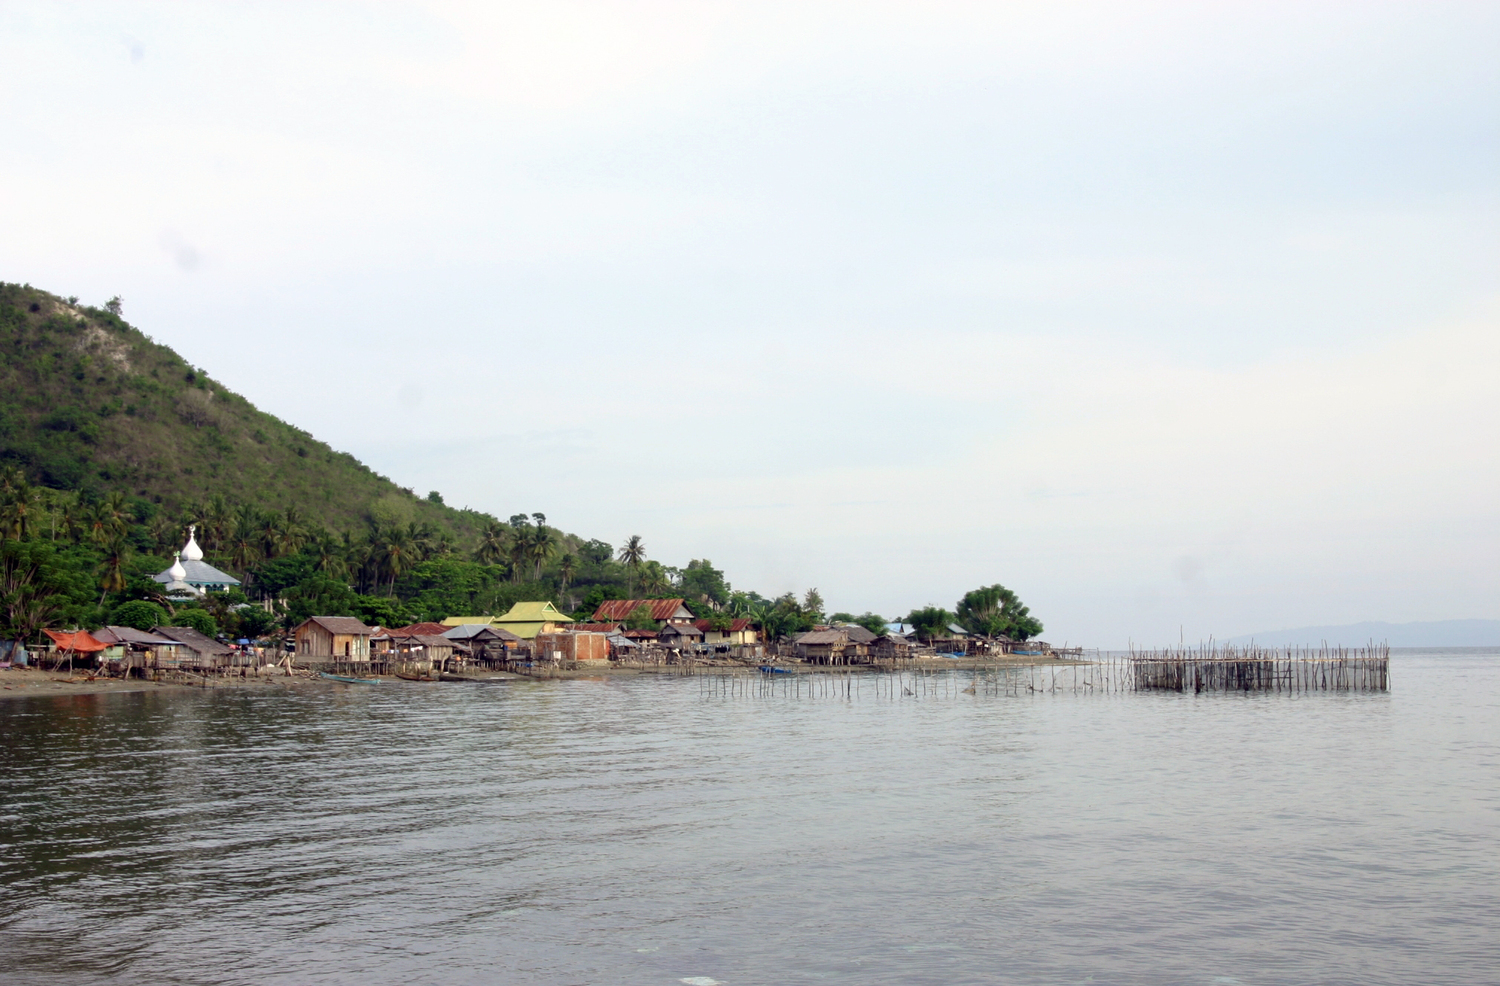 A coastal community in Donggala near Palu. Areas like this will benefit from mangrove and coral reef restoration for coastal hazard protection.